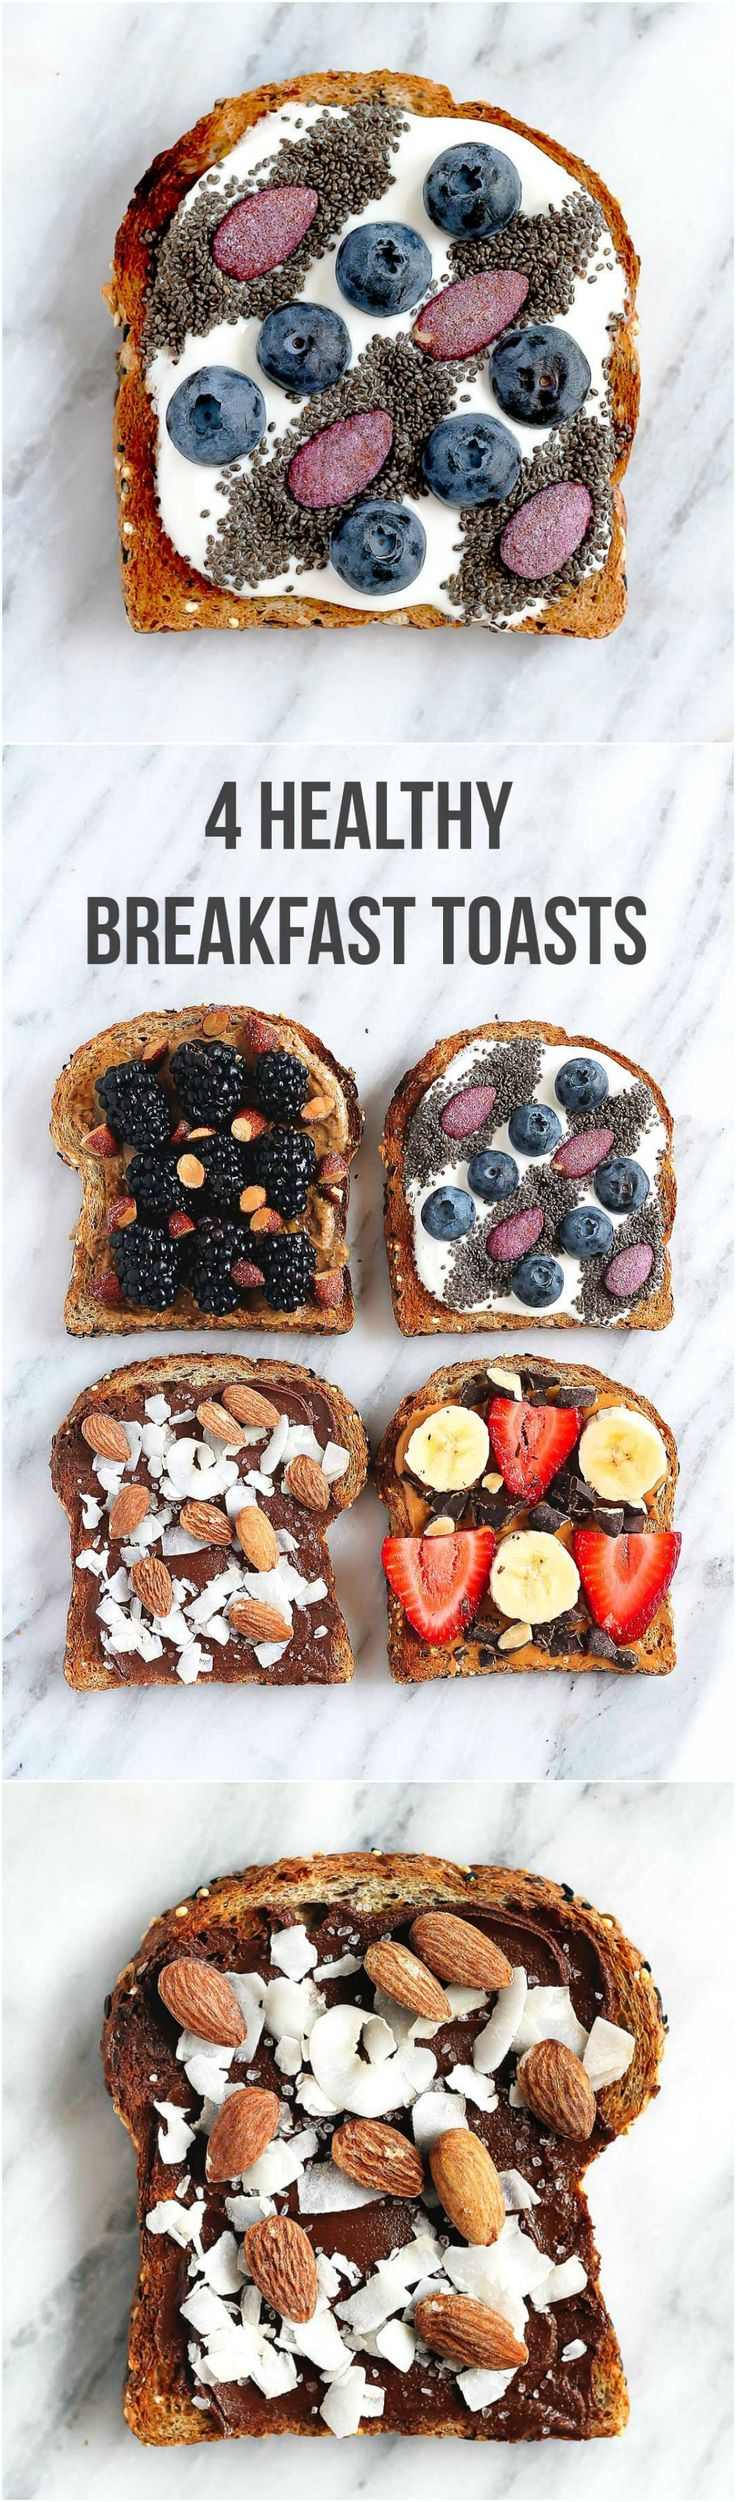 Wellness Wednesday: 4 Healthy Breakfast Toasts